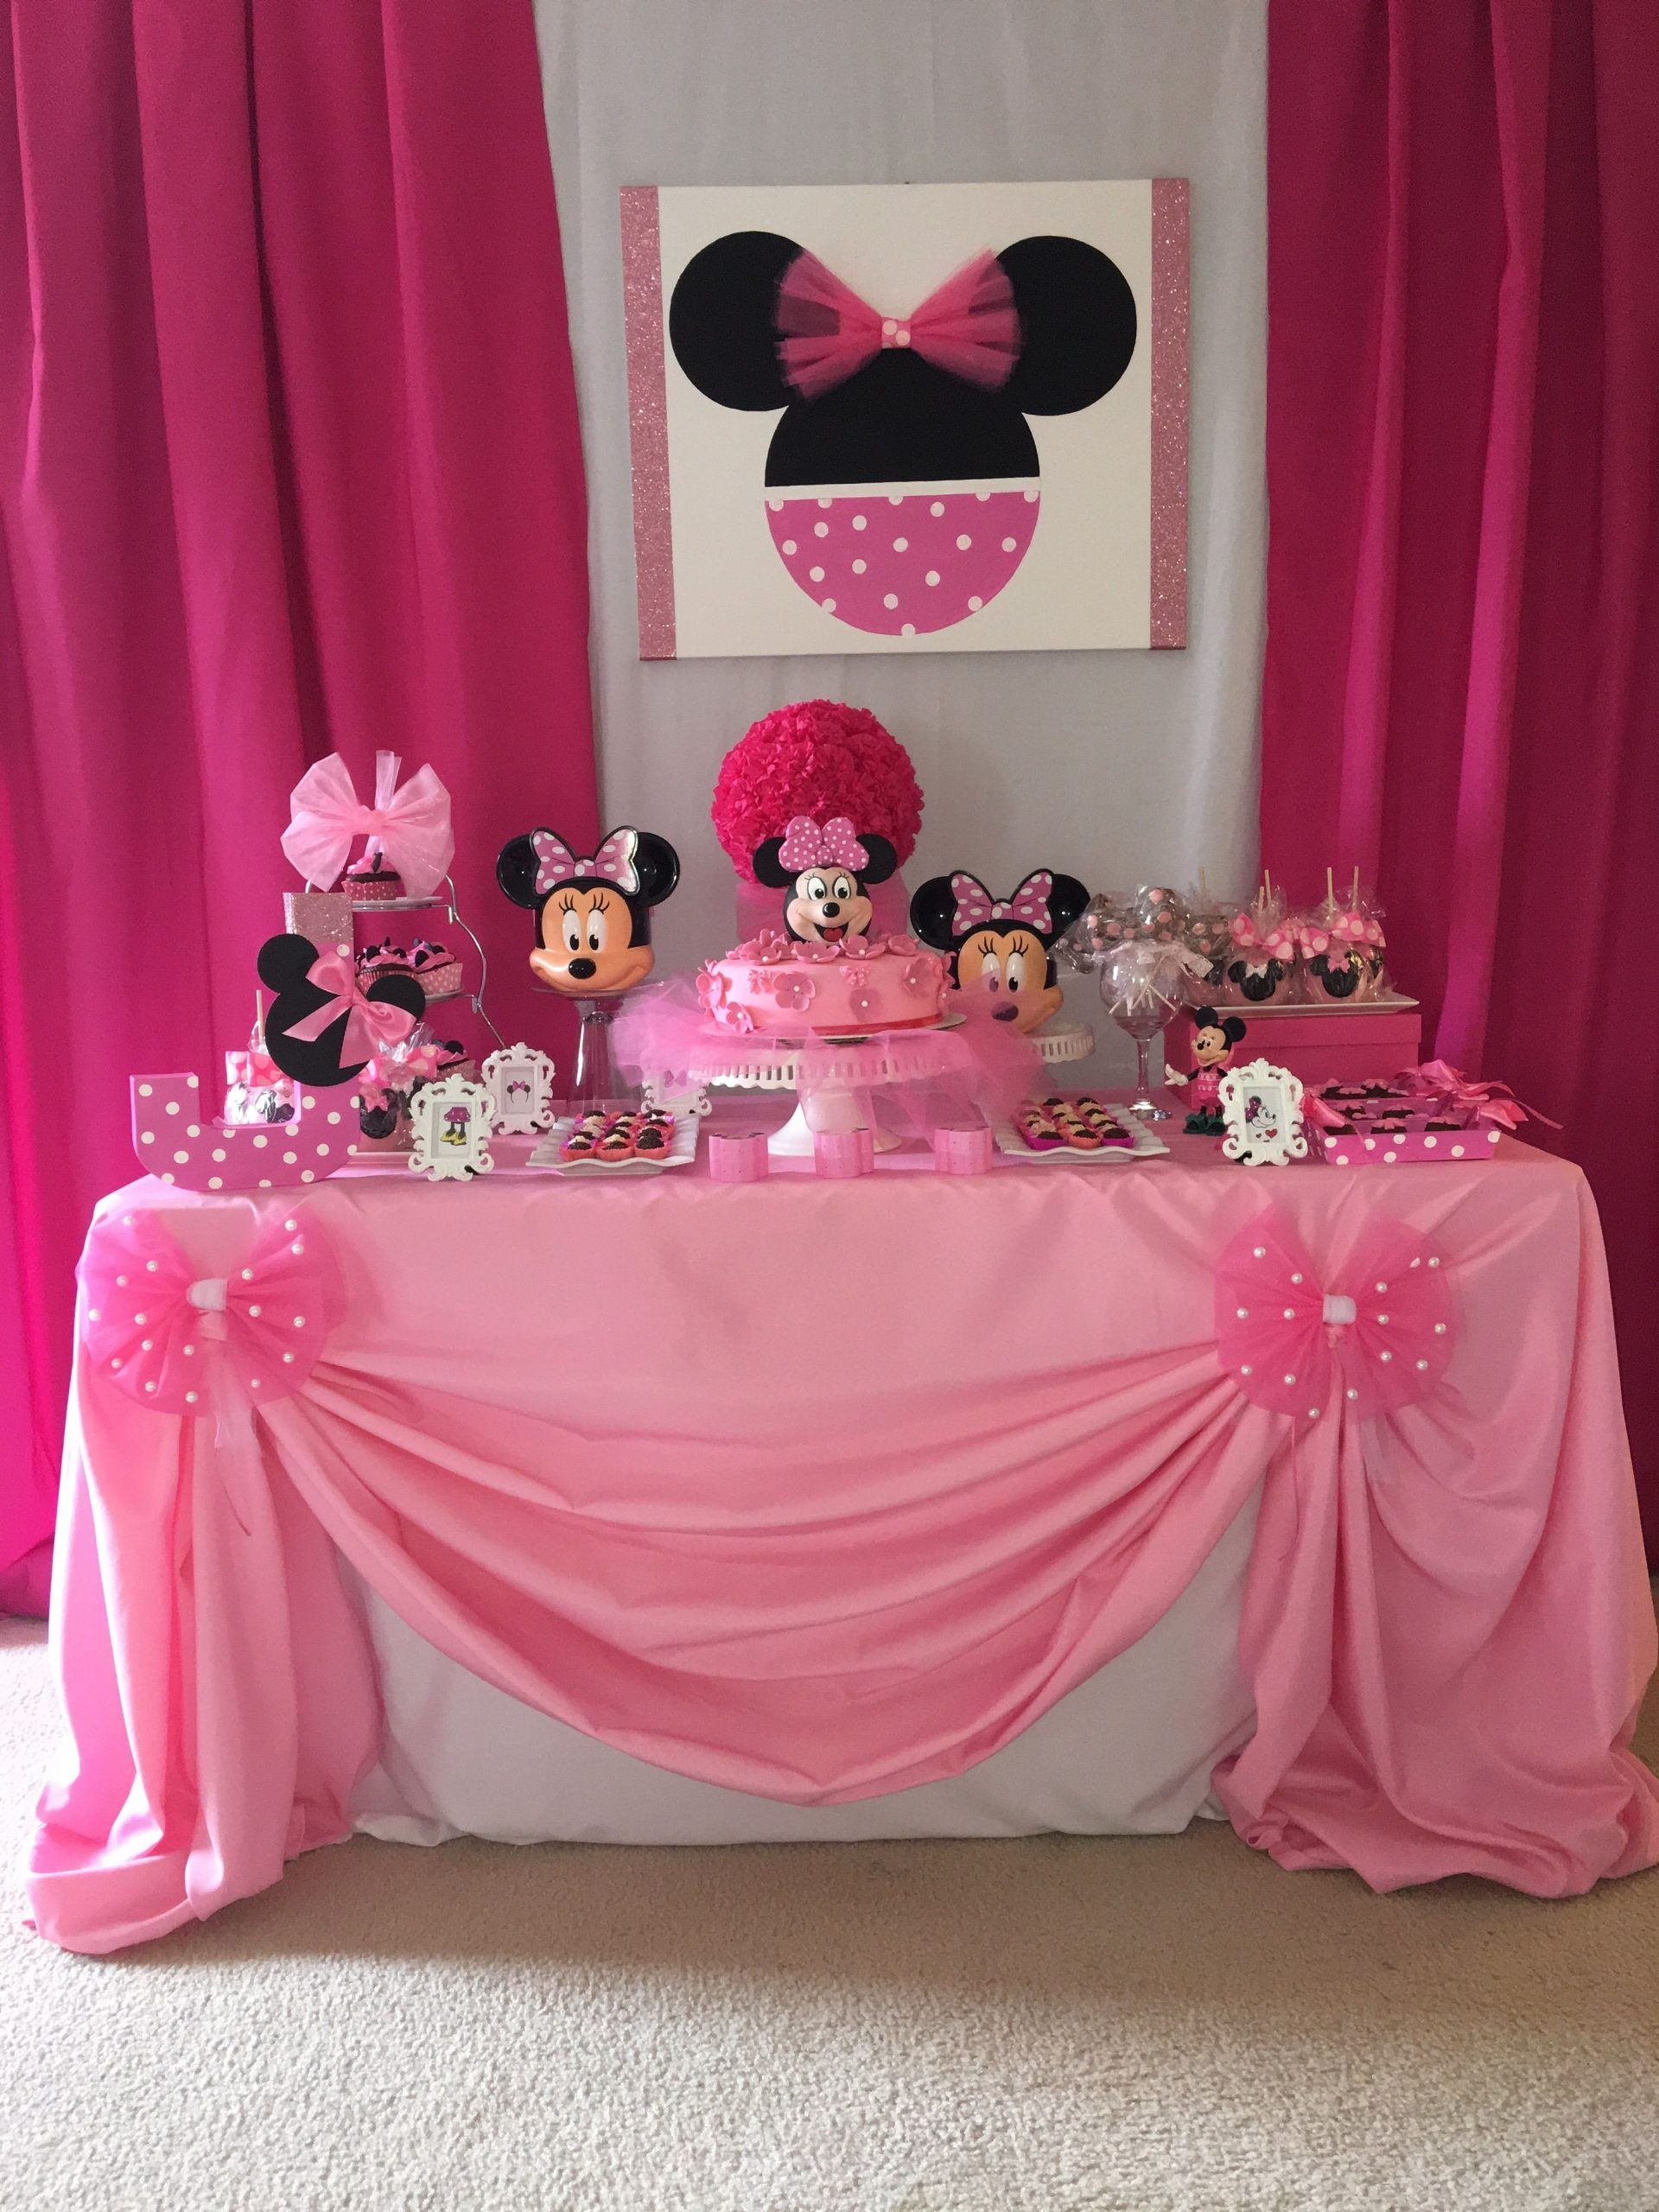 Minnie Mouse Birthday Party Ideas Intended For Newest Birt Minnie Mouse Birthday Decorations Minnie Mouse Birthday Party Decorations Minnie Mouse Decorations